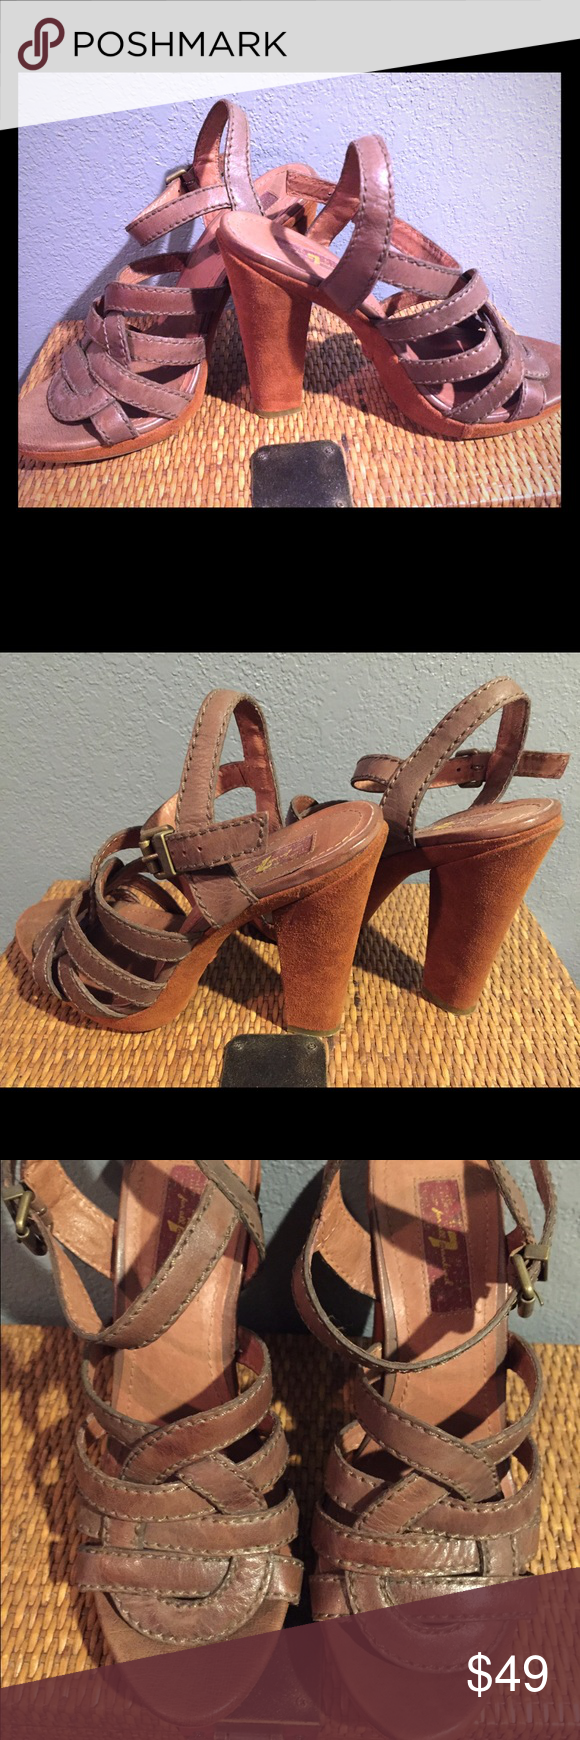 7For All Mankind heels Brown leather 7For All Mankind heels. I bought them and wore them twice. They are a 7.5 and are just too snug for me. I am a true size 8. Just wasn't able to pass them up when I originally bought them. 7 for all Mankind Shoes Heels